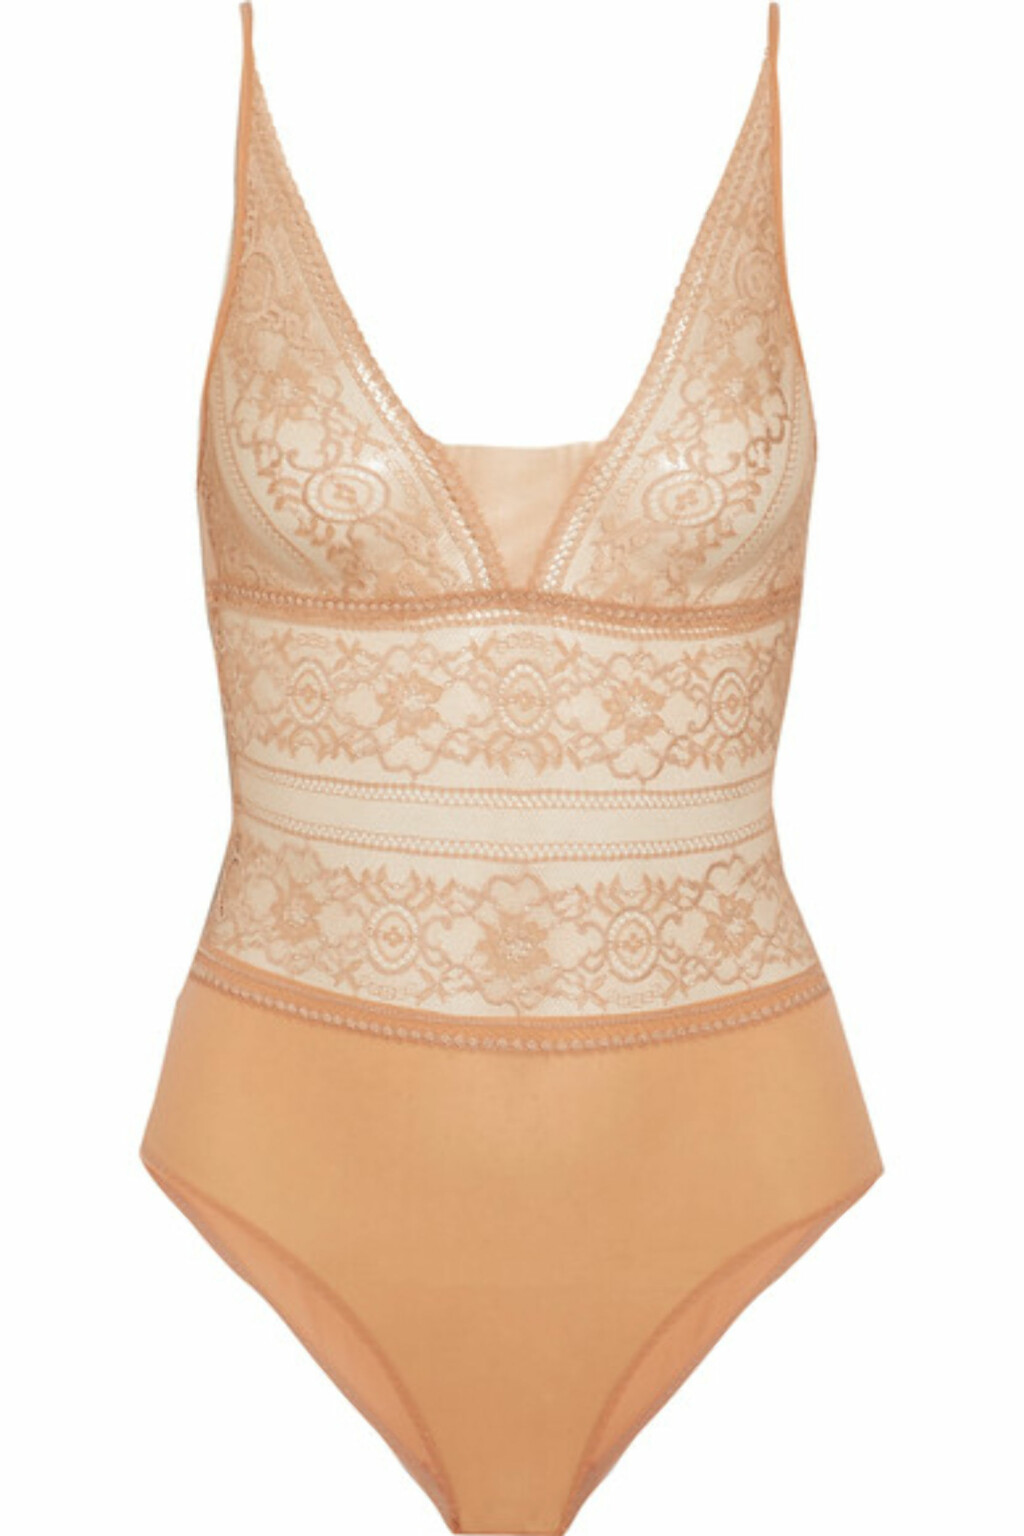 Body fra Stella McCartney via Net-a-porter.com |2000,-